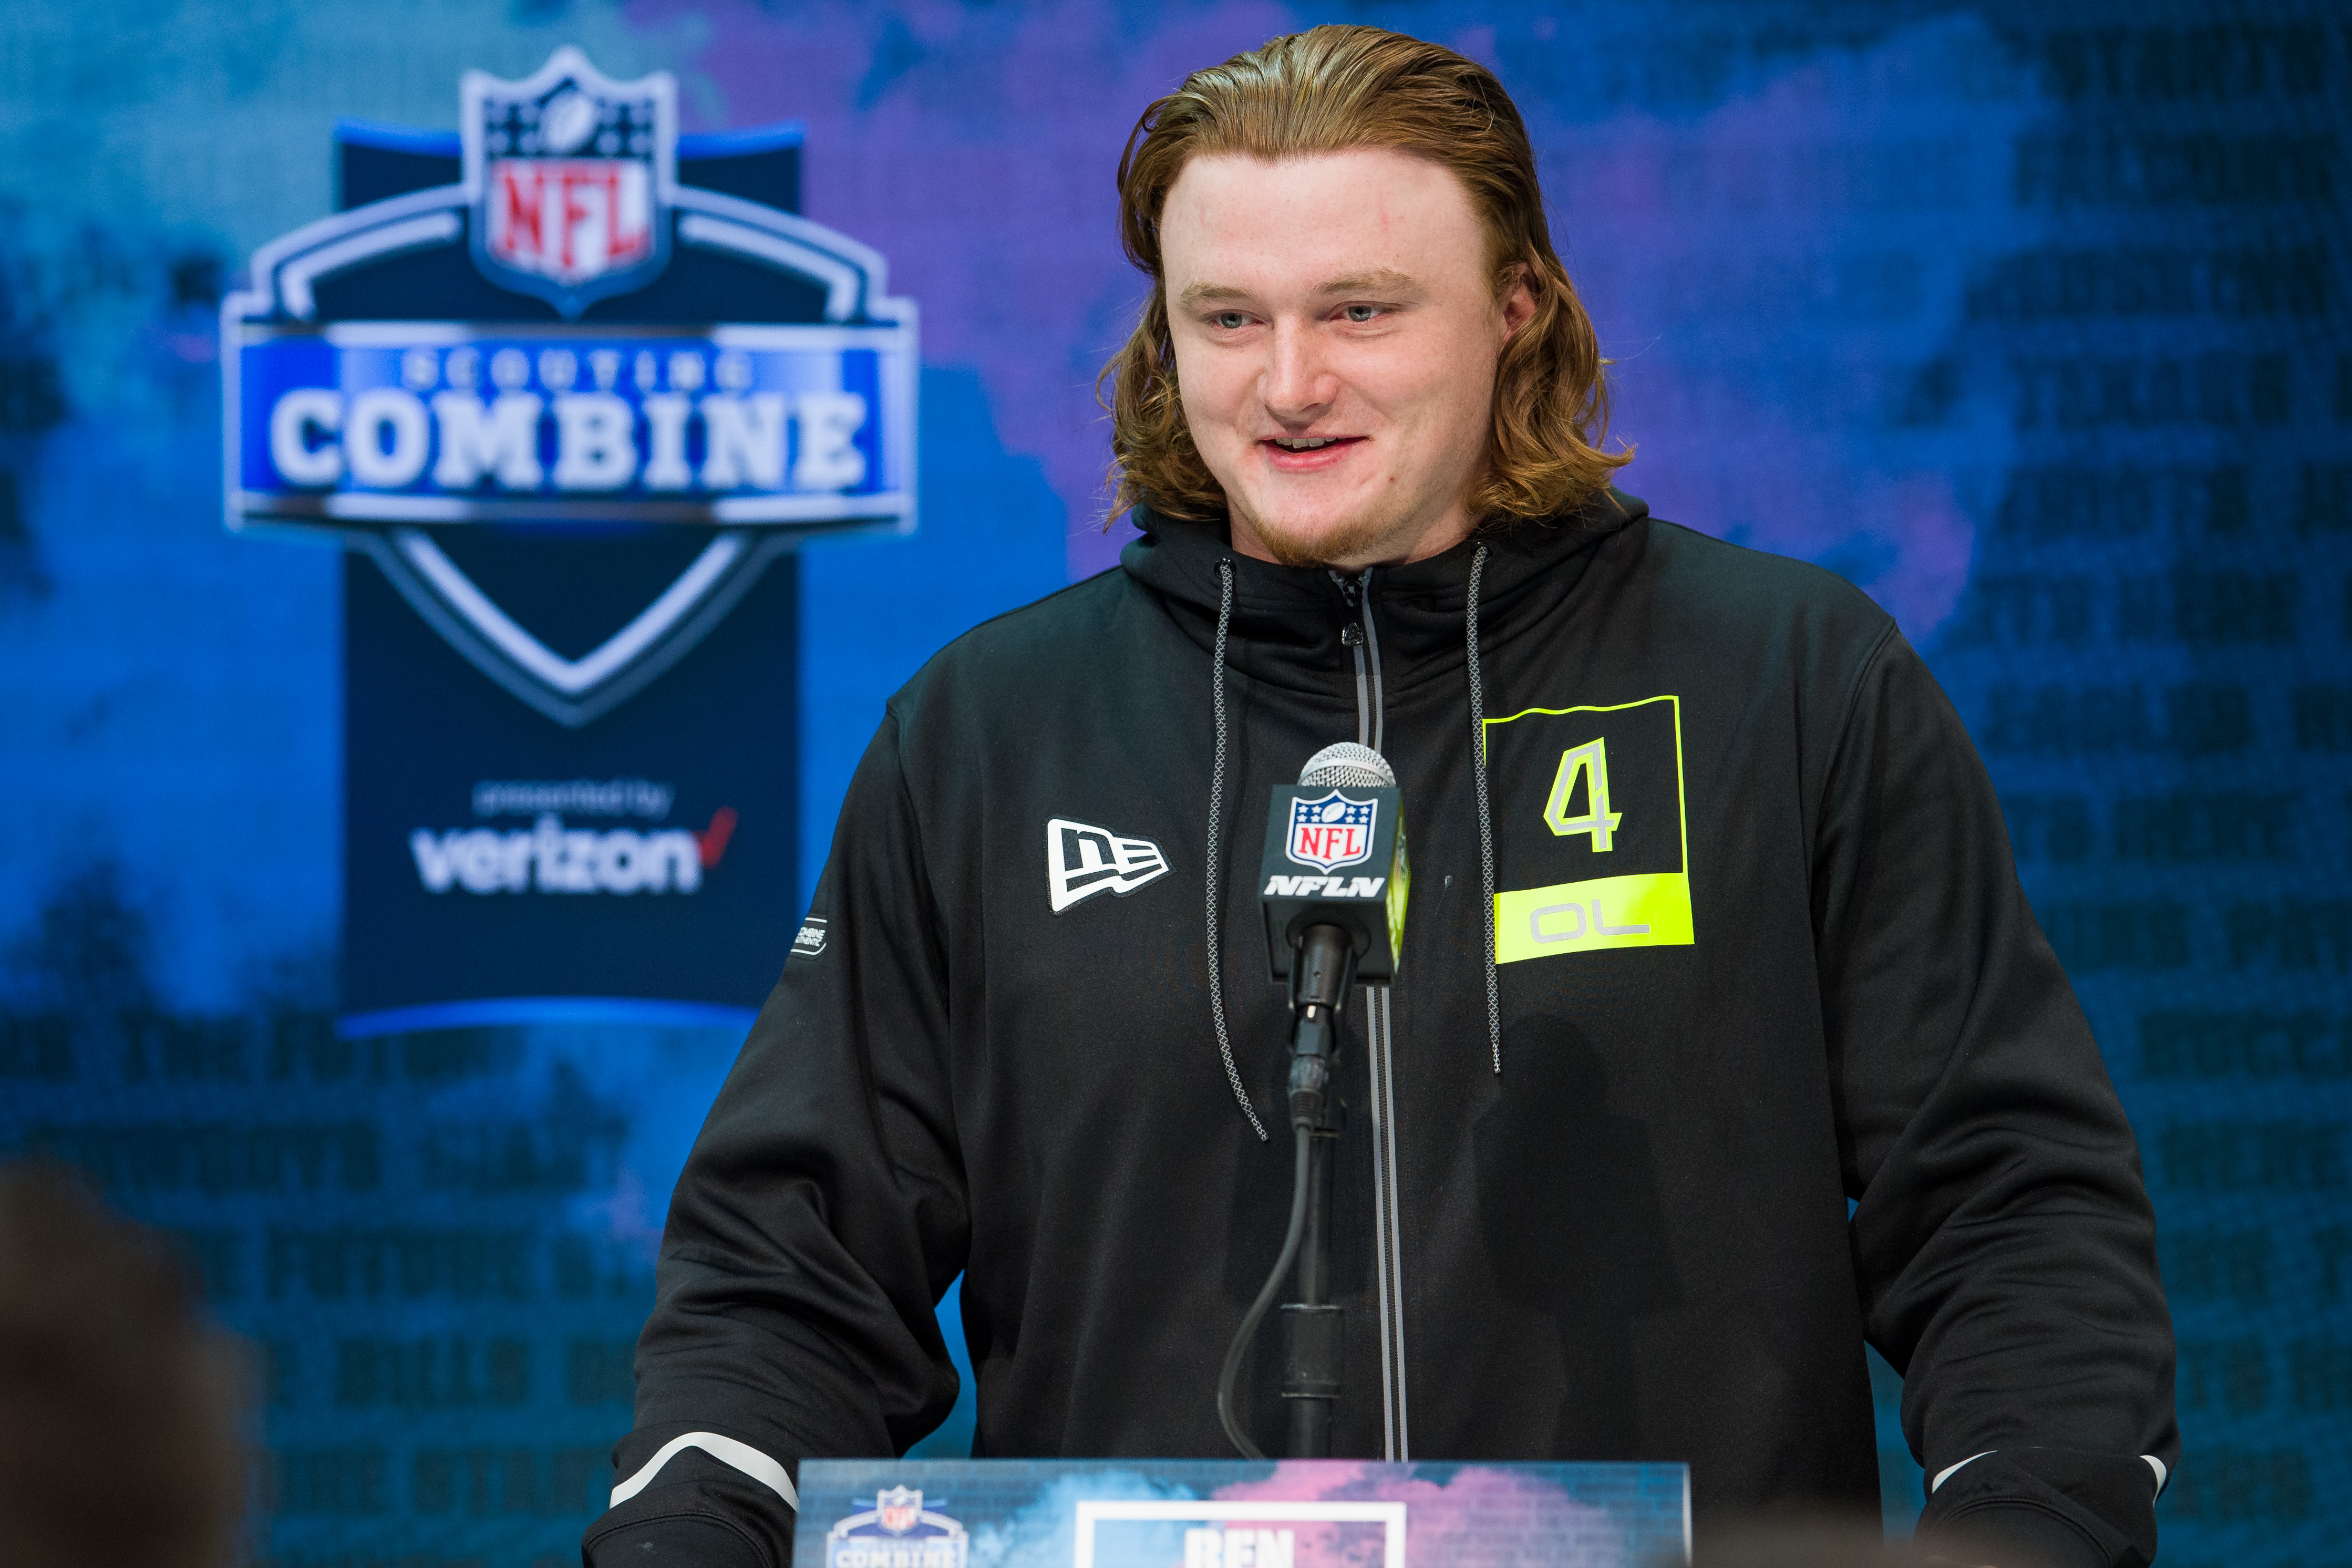 NFL: FEB 26 Scouting Combine